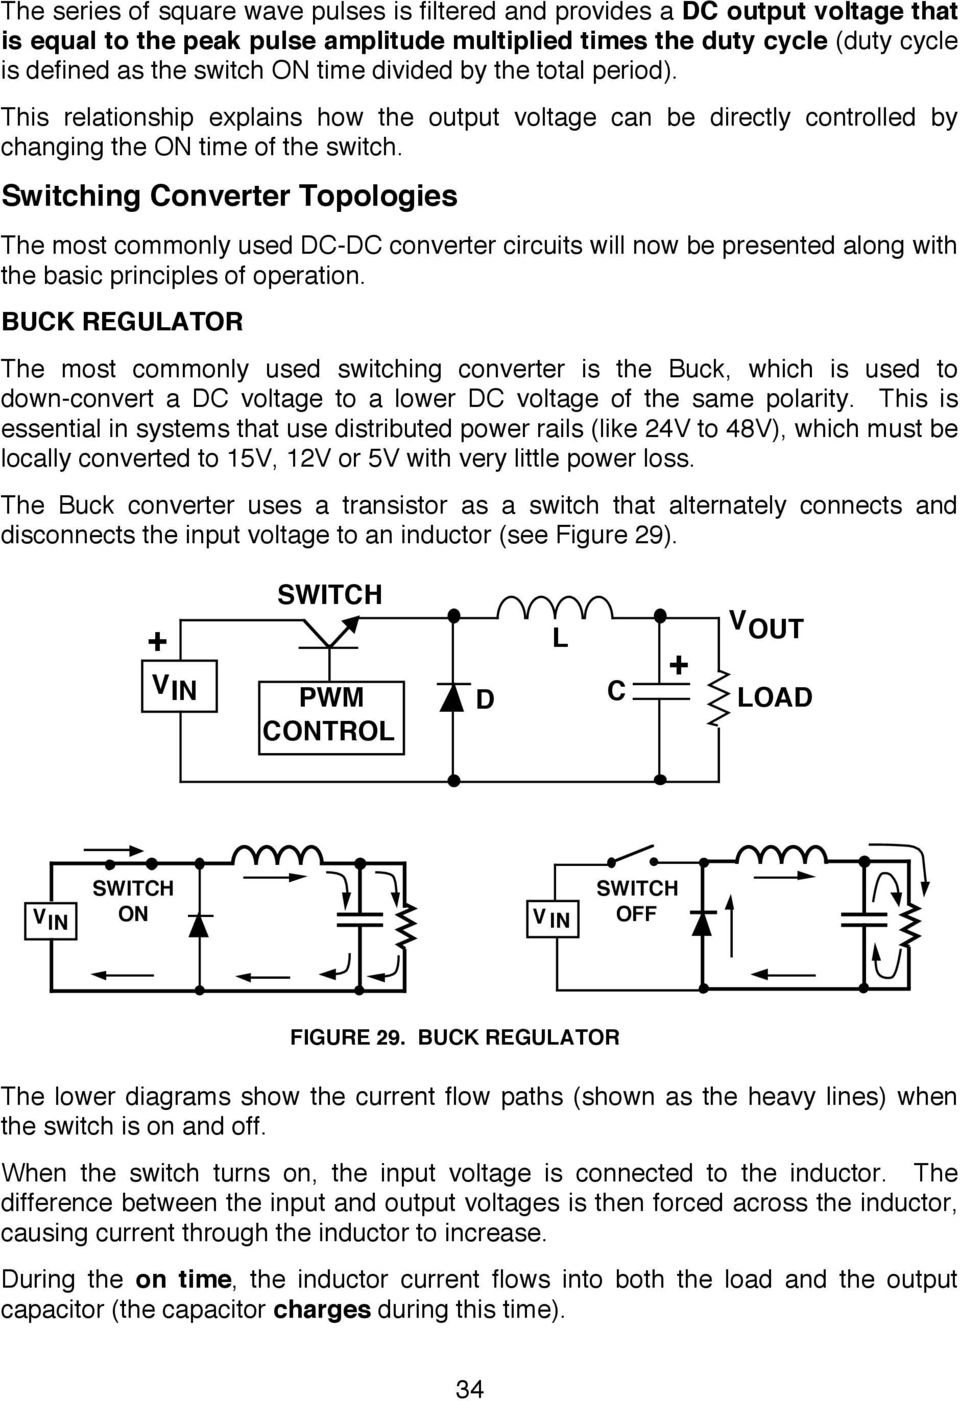 Switching Regulators Pdf 3 Output Isolated Flyback Regulator Circuit Diagram Using Lm2577 Converter Topologies The Most Commonly Used Dc Circuits Will Now Be Presented